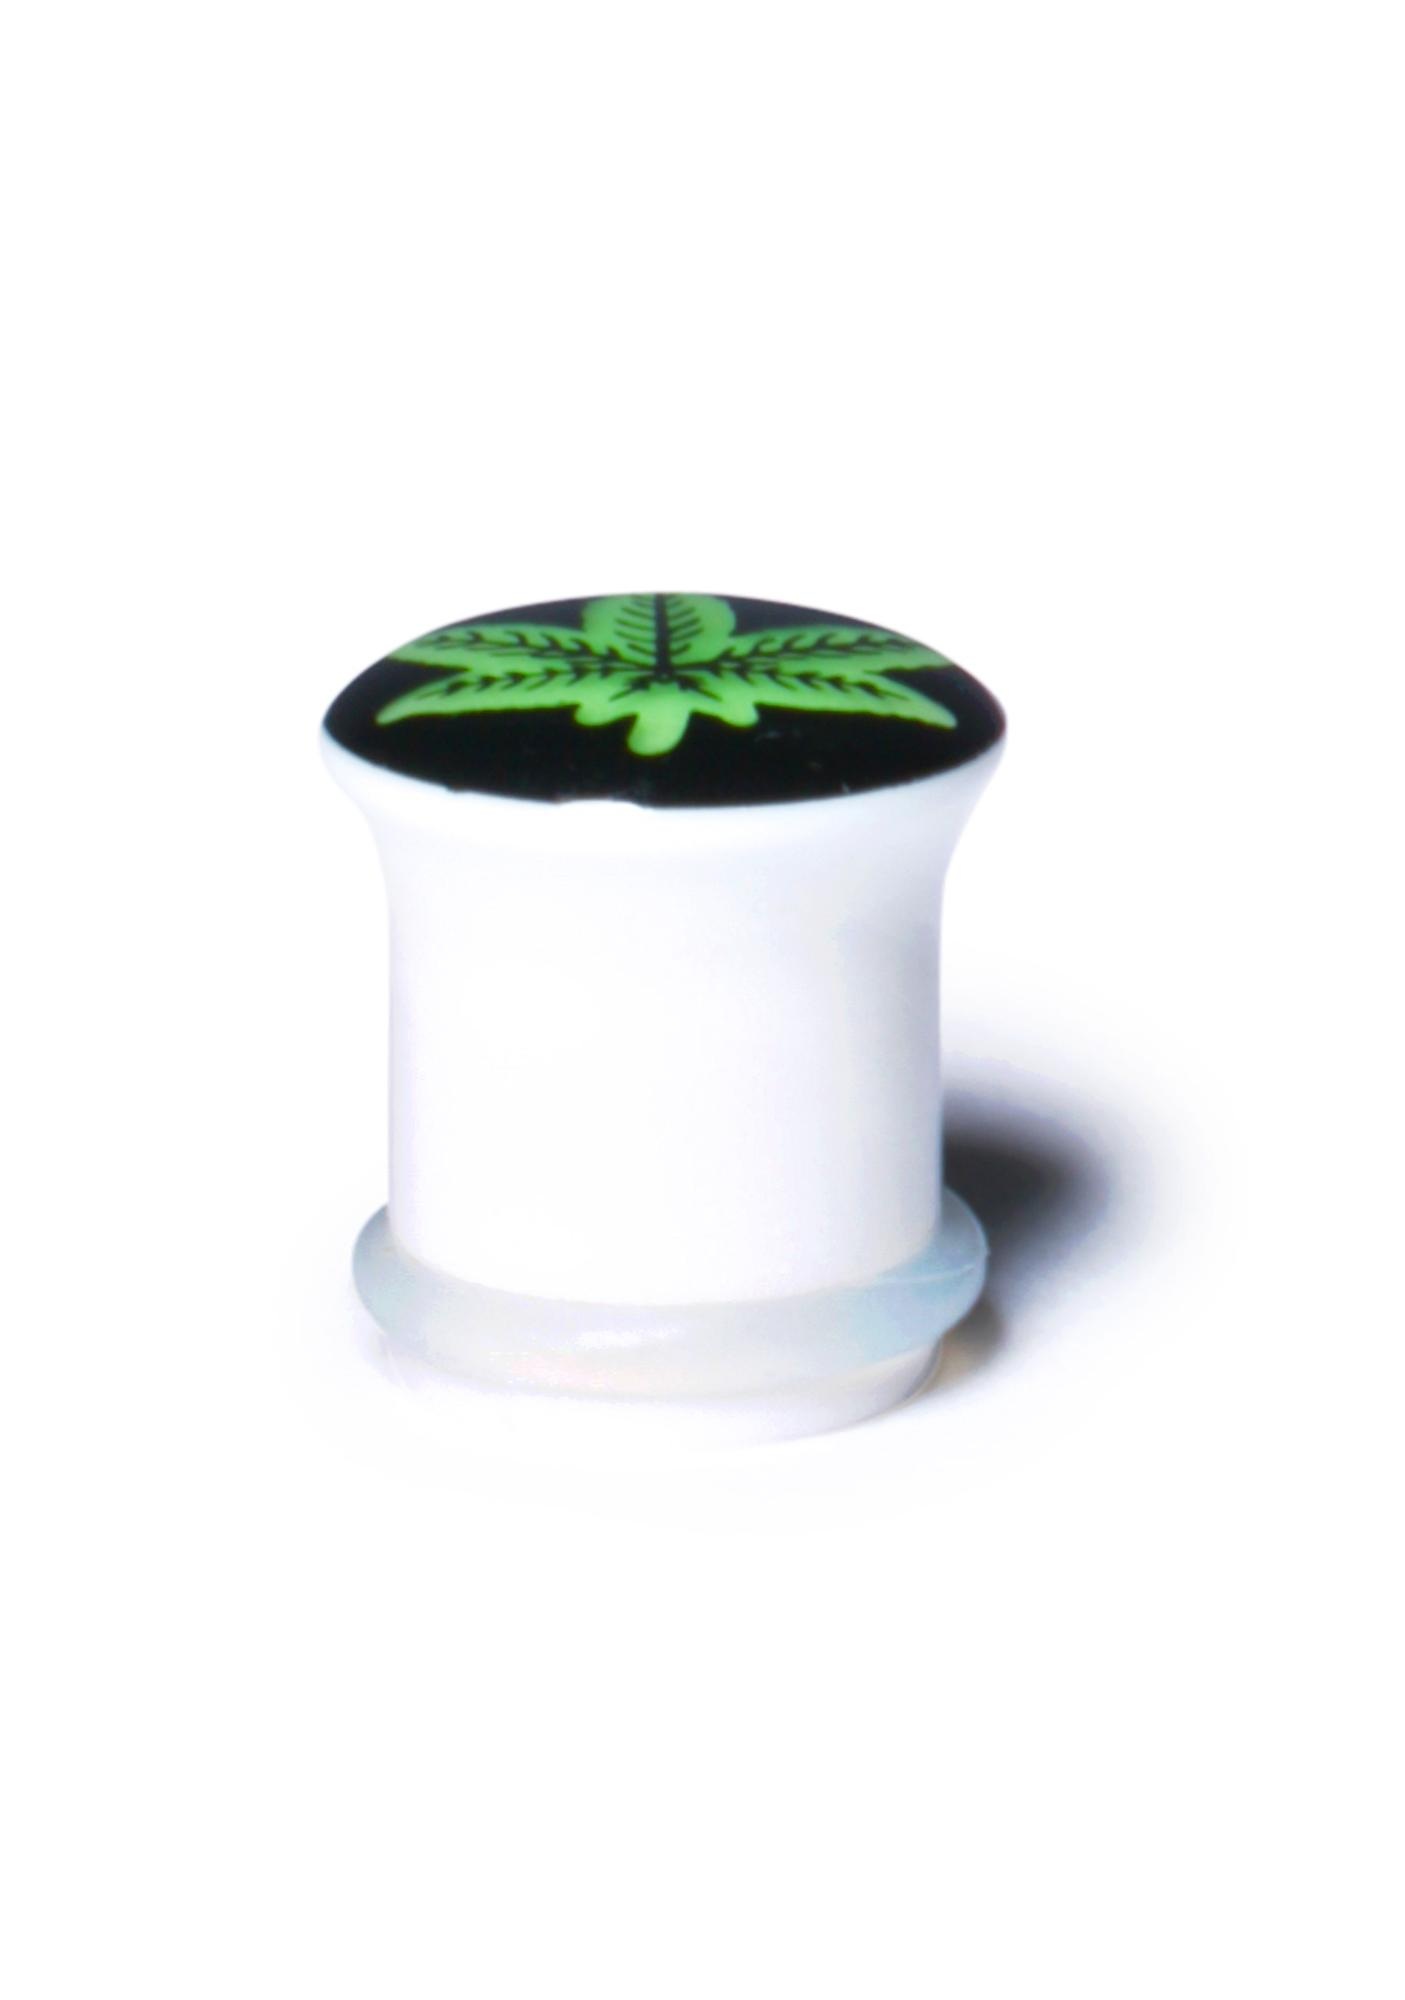 Weed Gauged Plugs